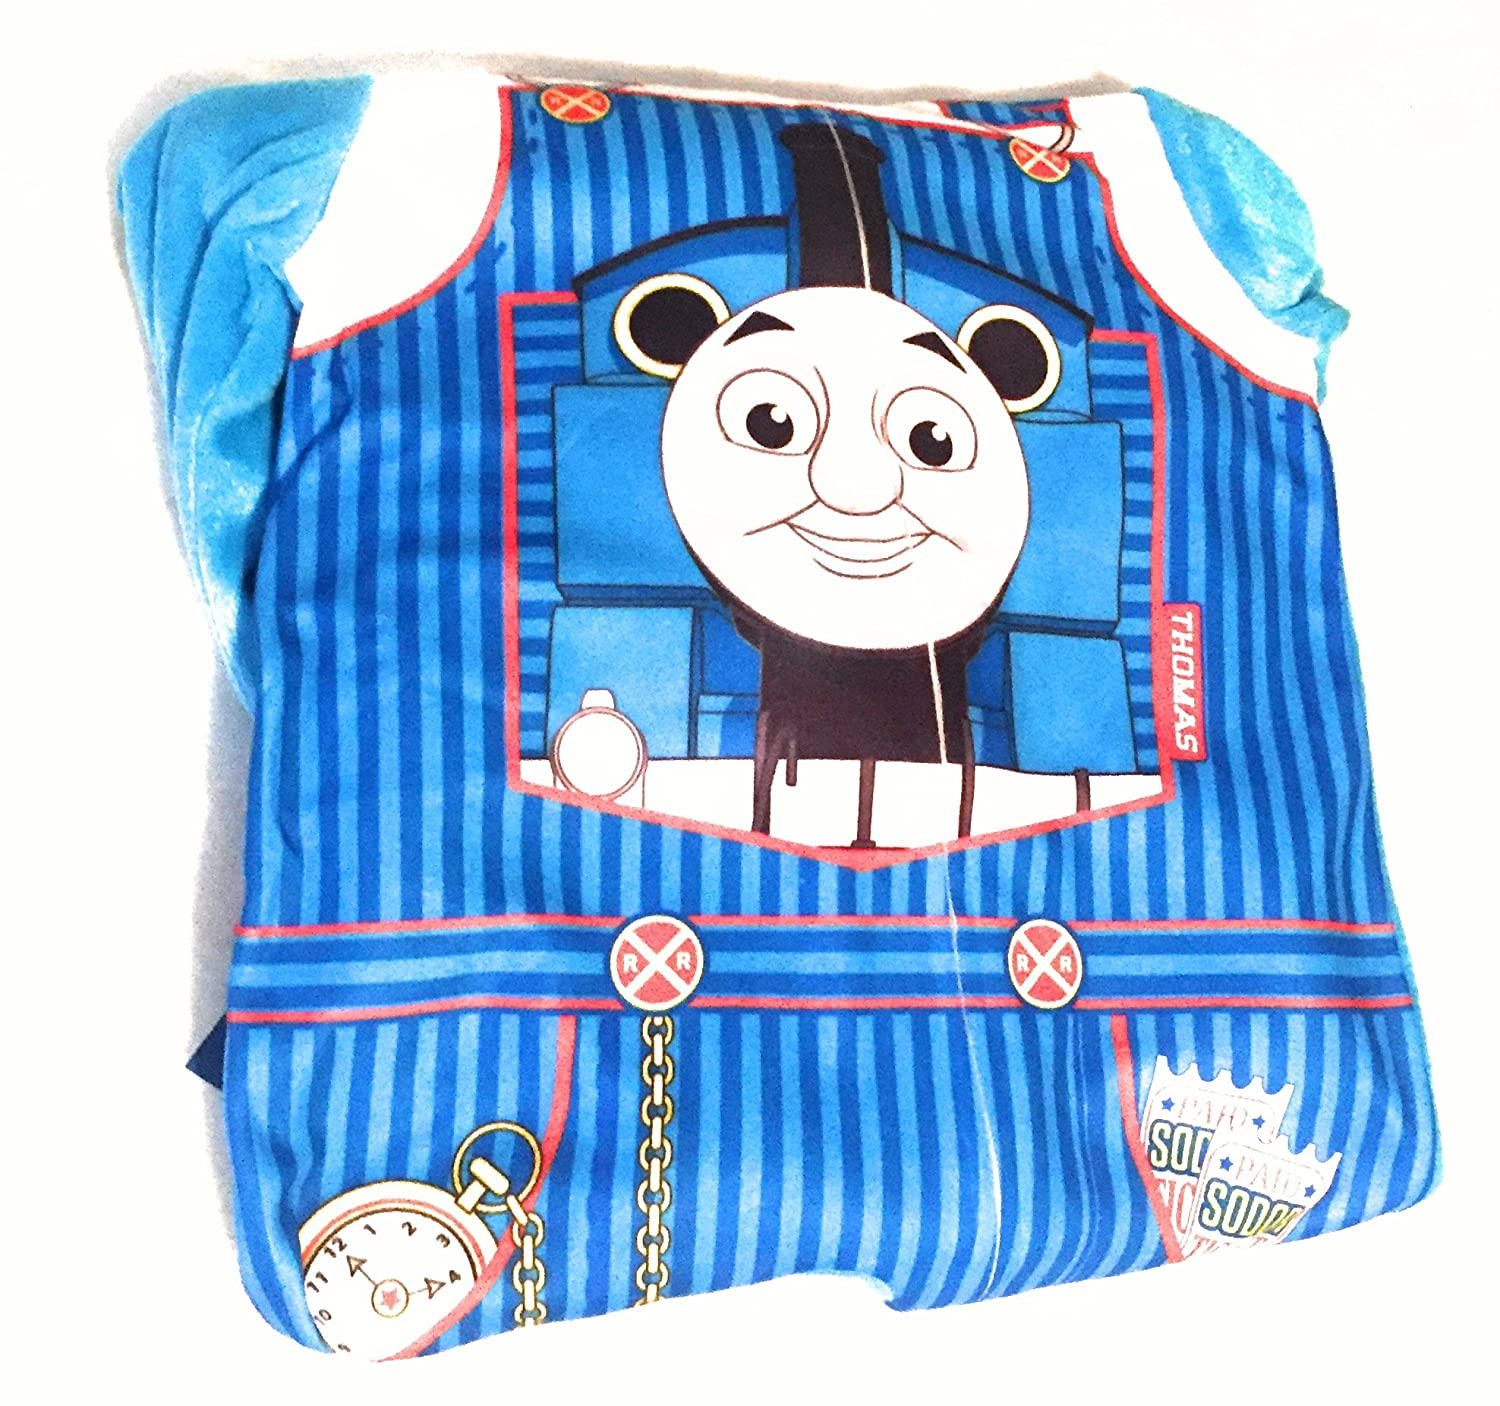 新到着 Thomas & Friends SLEEPWEAR SLEEPWEAR ボーイズ Thomas 2T Friends B076FLDVJV, アンダーアーマーヒート:650eea15 --- a0267596.xsph.ru